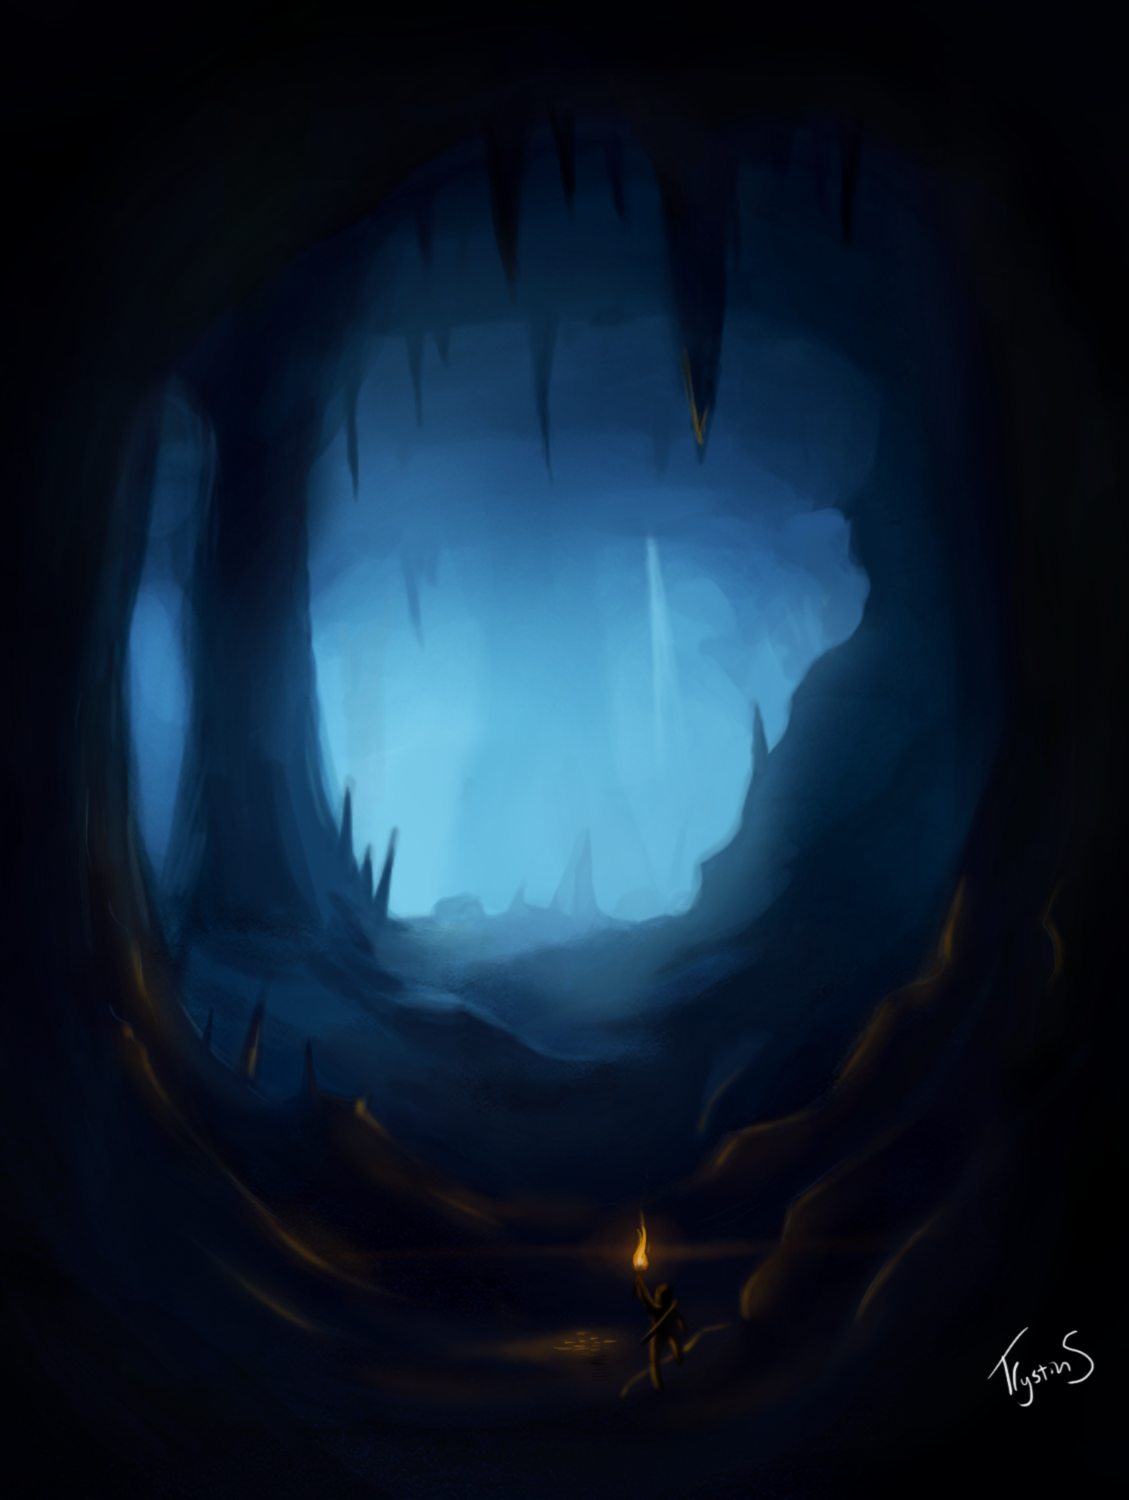 Drawn cavern dark cave Caption superstay's Provided No profile